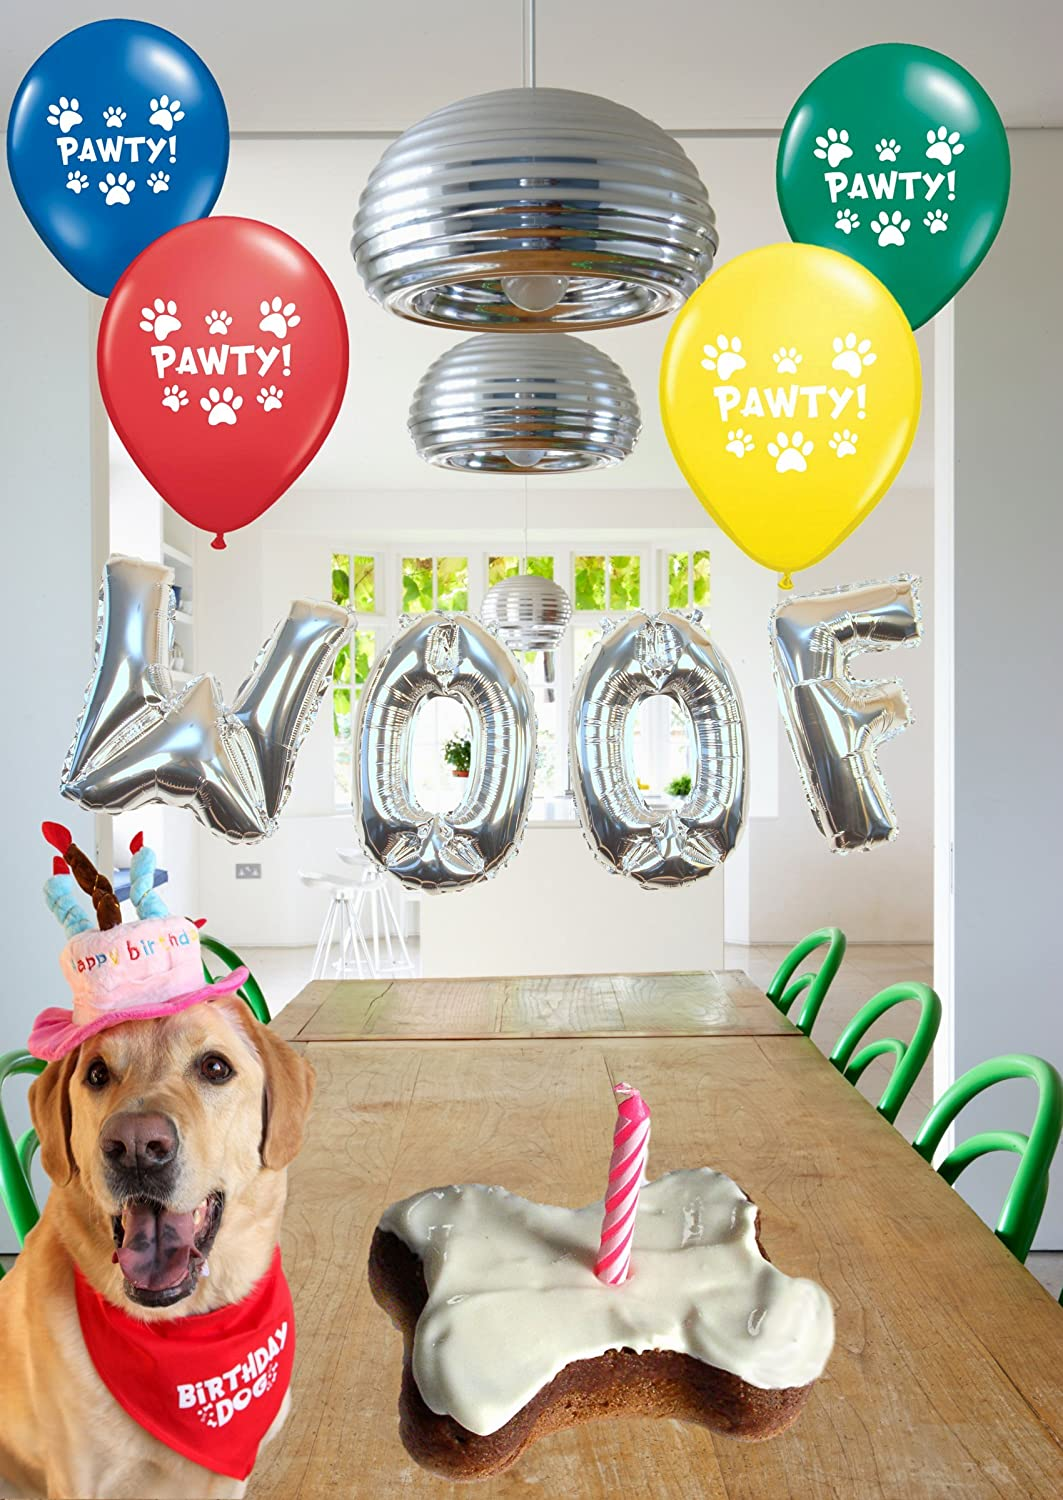 Dog Birthday Party Decorations Kit By Blast In A Box Blue Hat Puppy Cake